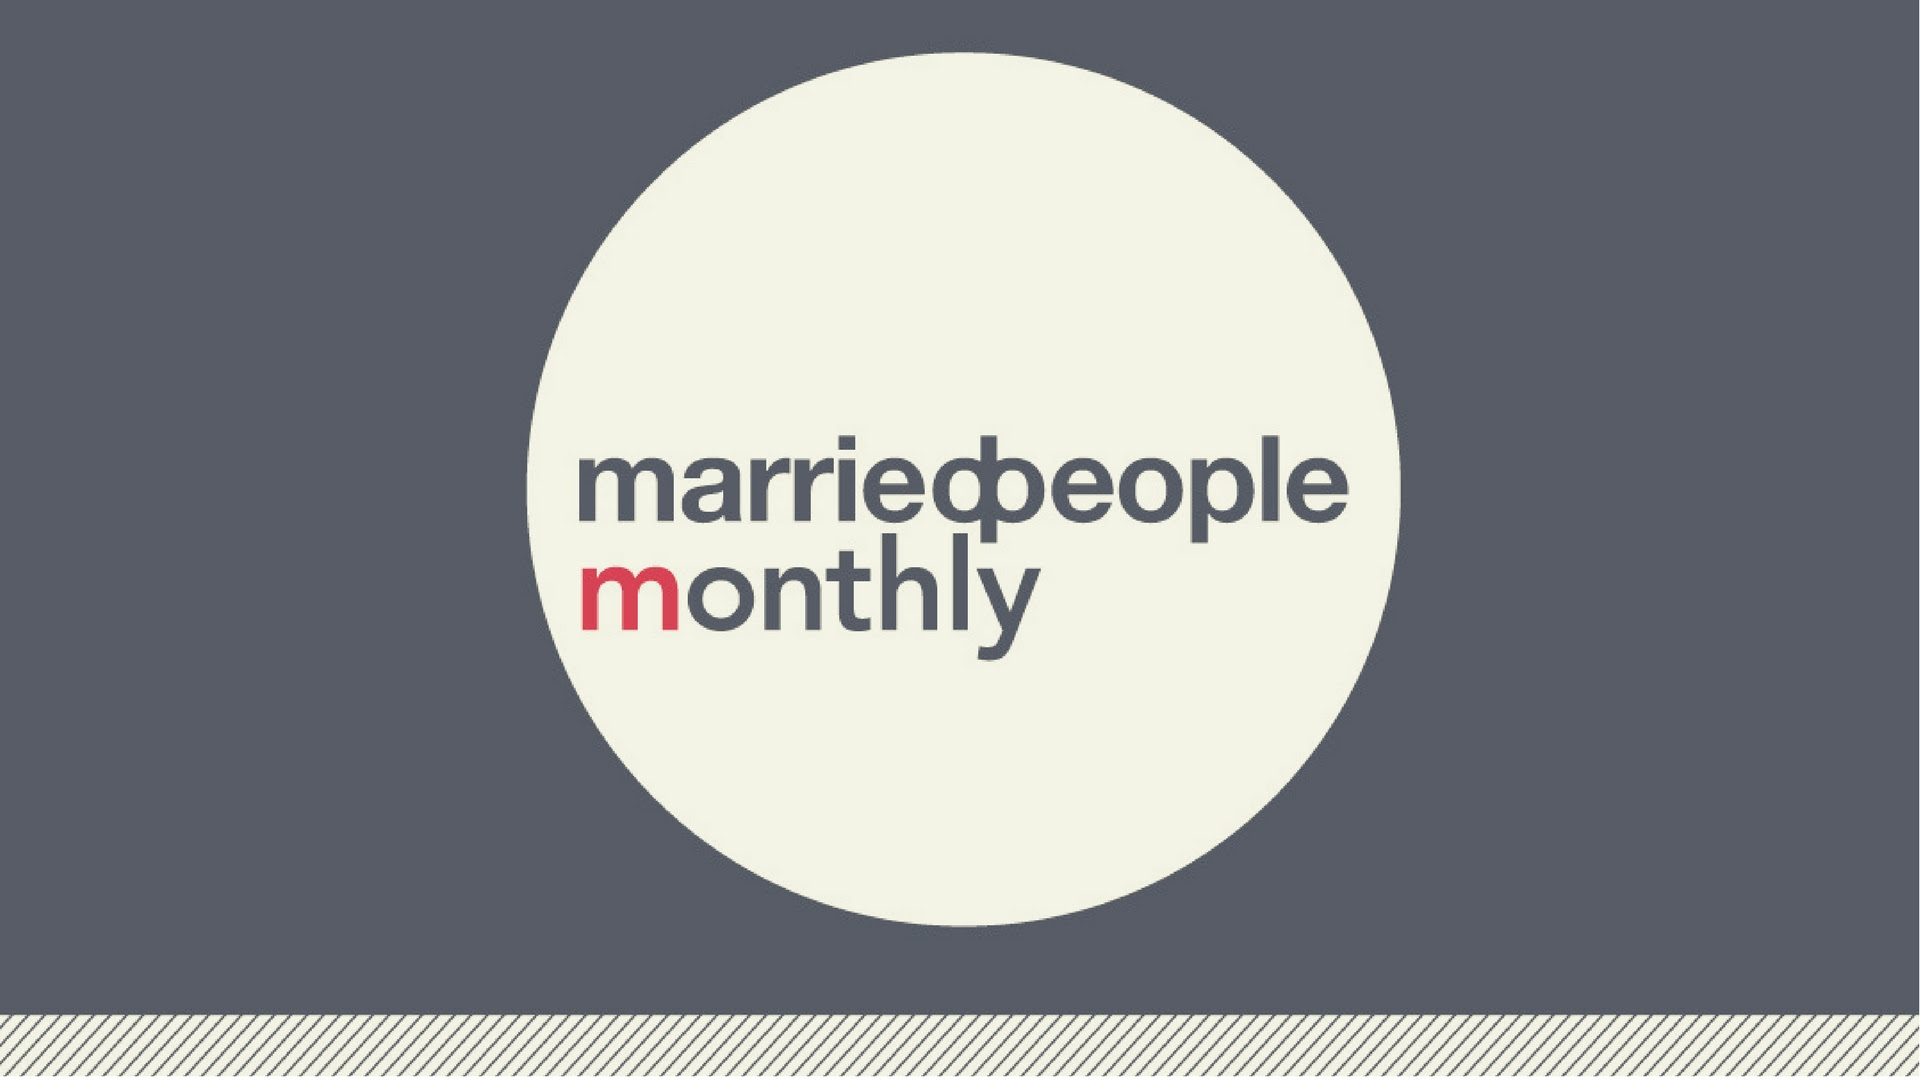 January MARRIED PEOPLE newsletter - The Monthly Married People Newsletter shares ideas and insights you can actually apply to your marriage. So try a few of the tips in the Married PeopleNewsletter and see how little things can turn into something big. You got this... because you are better at marriage than you think!